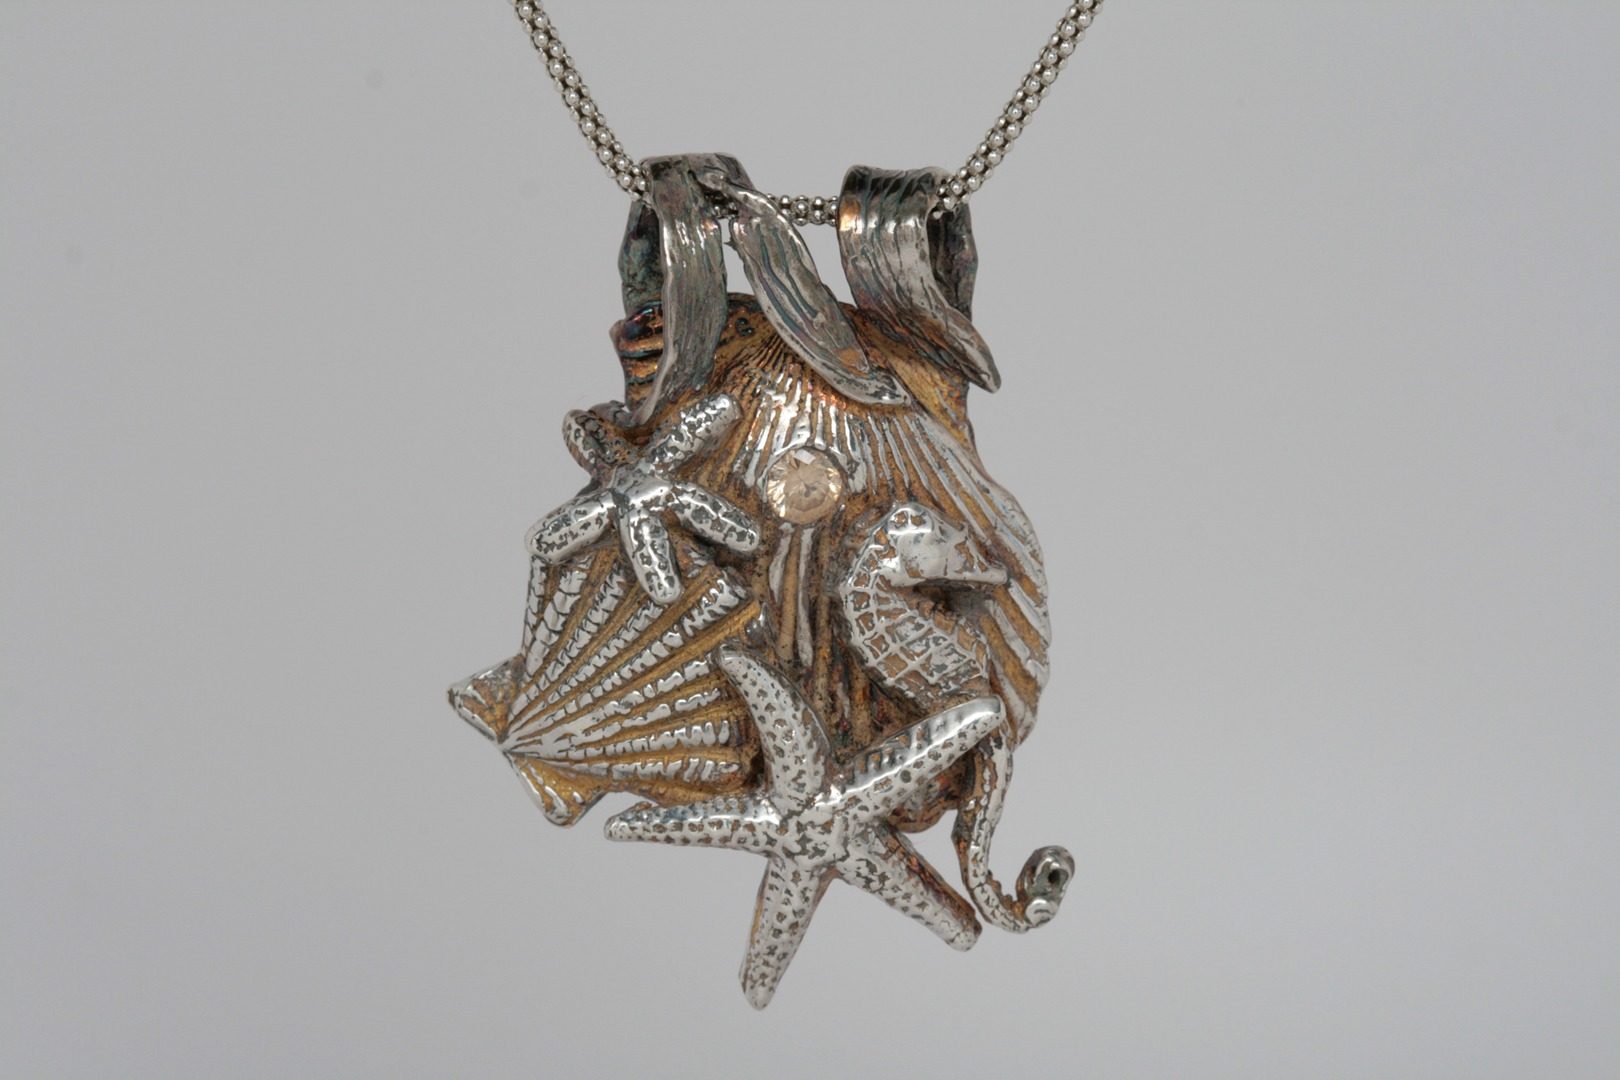 Silver Metal Clay: Sea Horse and Shells